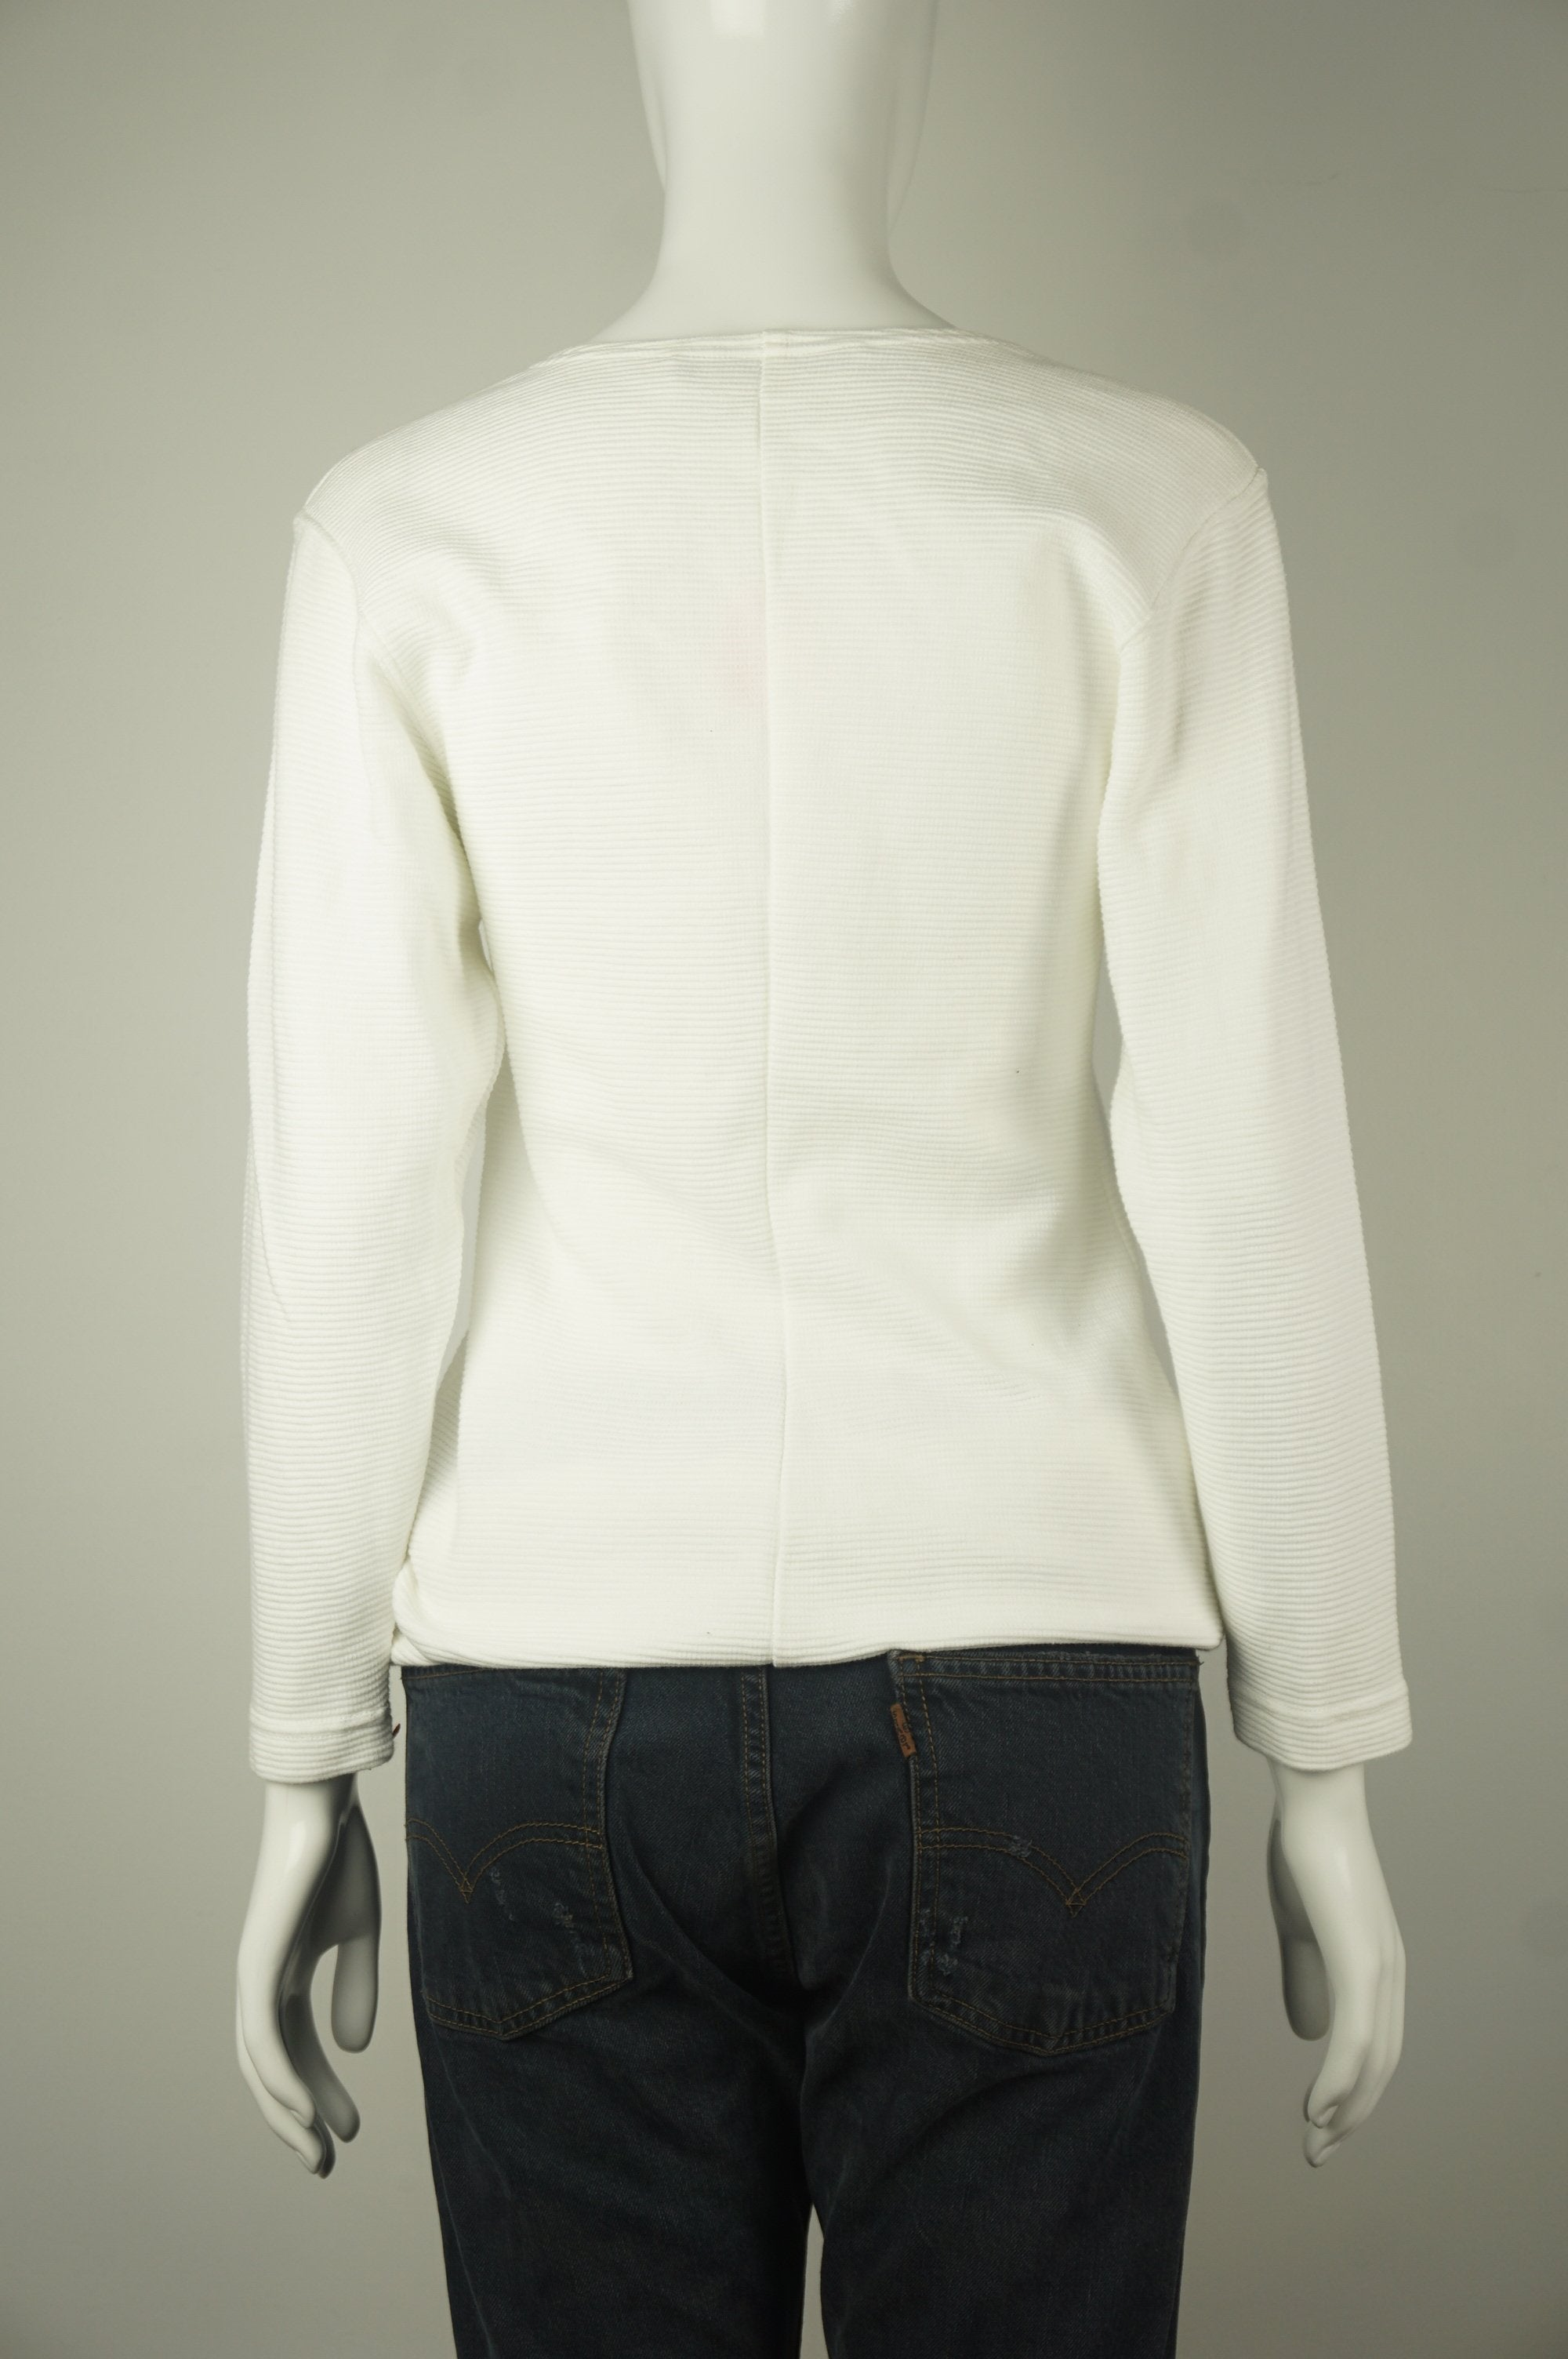 Cathy Hardwick White Long Sleeve Sweatshirt, This elegant vintage white shirt designed by designer Cathy Hardwick will guarantee to keep you warm and stylish on chilly days. , White, 100% Cotton, women's Tops, women's White Tops, Cathy Hardwick women's Tops, Cathy Hardwick designer sweater, women's sweatshirt, women's top